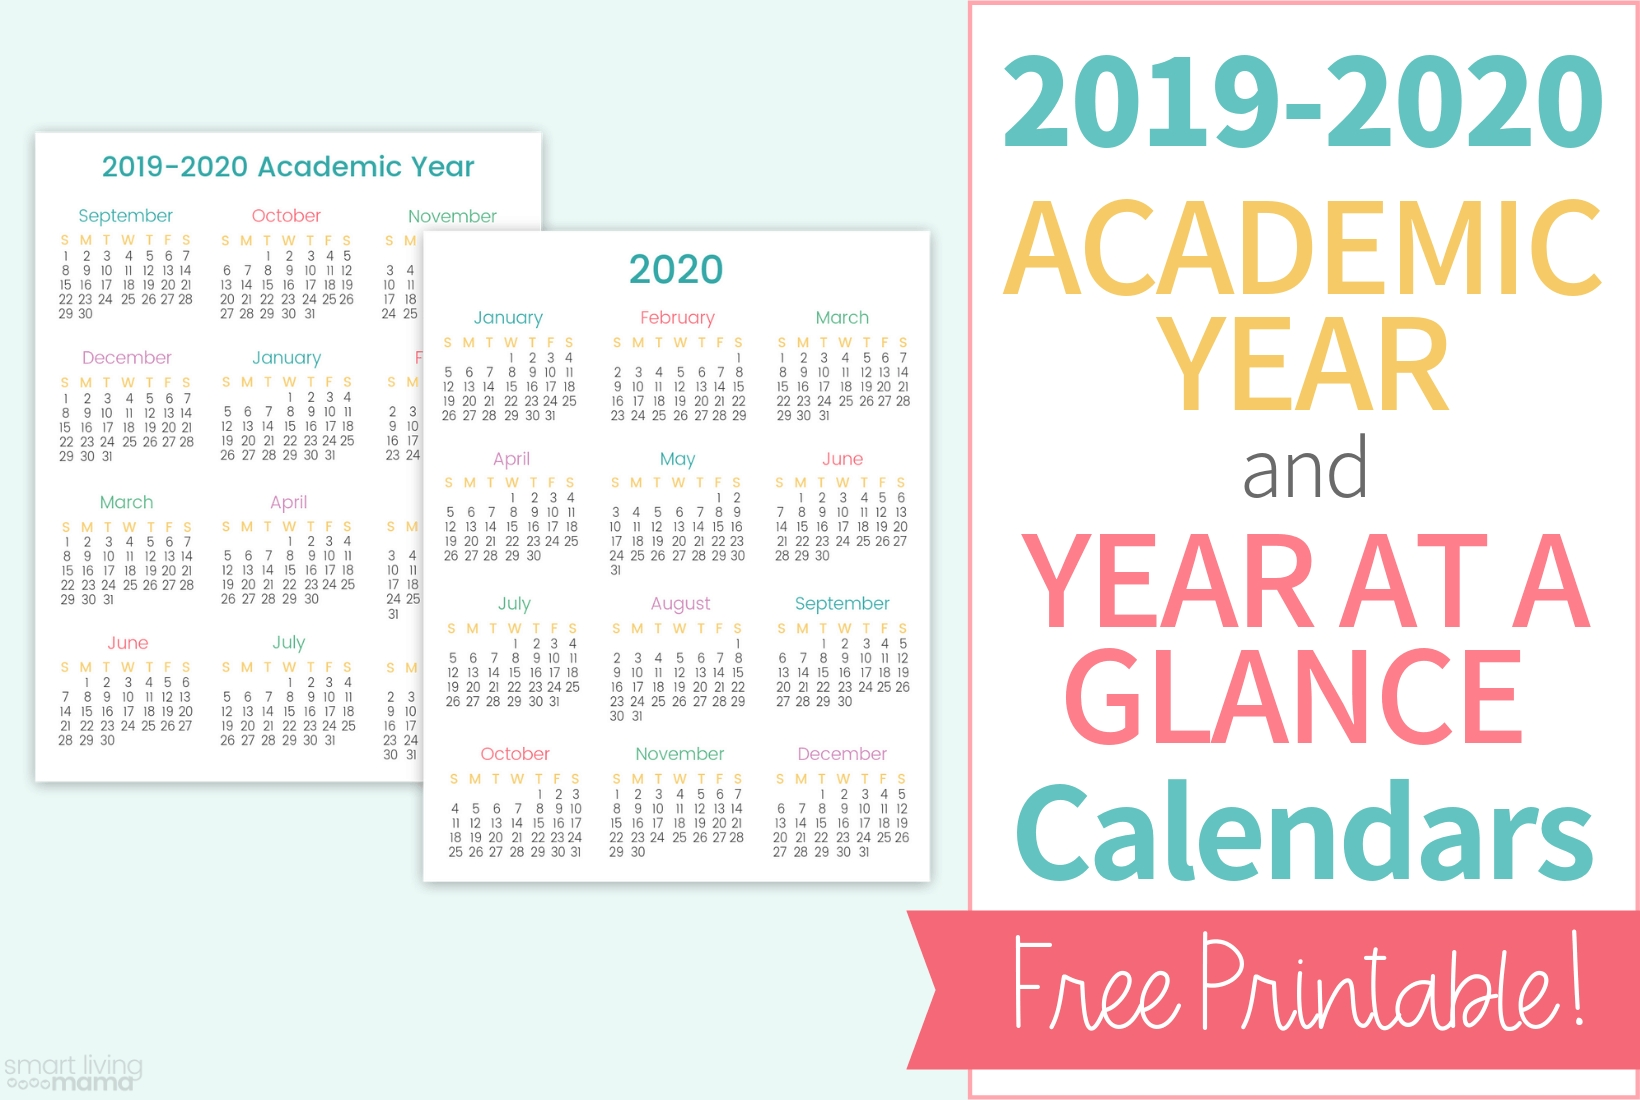 Colorful Printable Calendars For 2019-2020 | Smart Living Mama throughout Free Printable Year At A Glance Calendar 2020